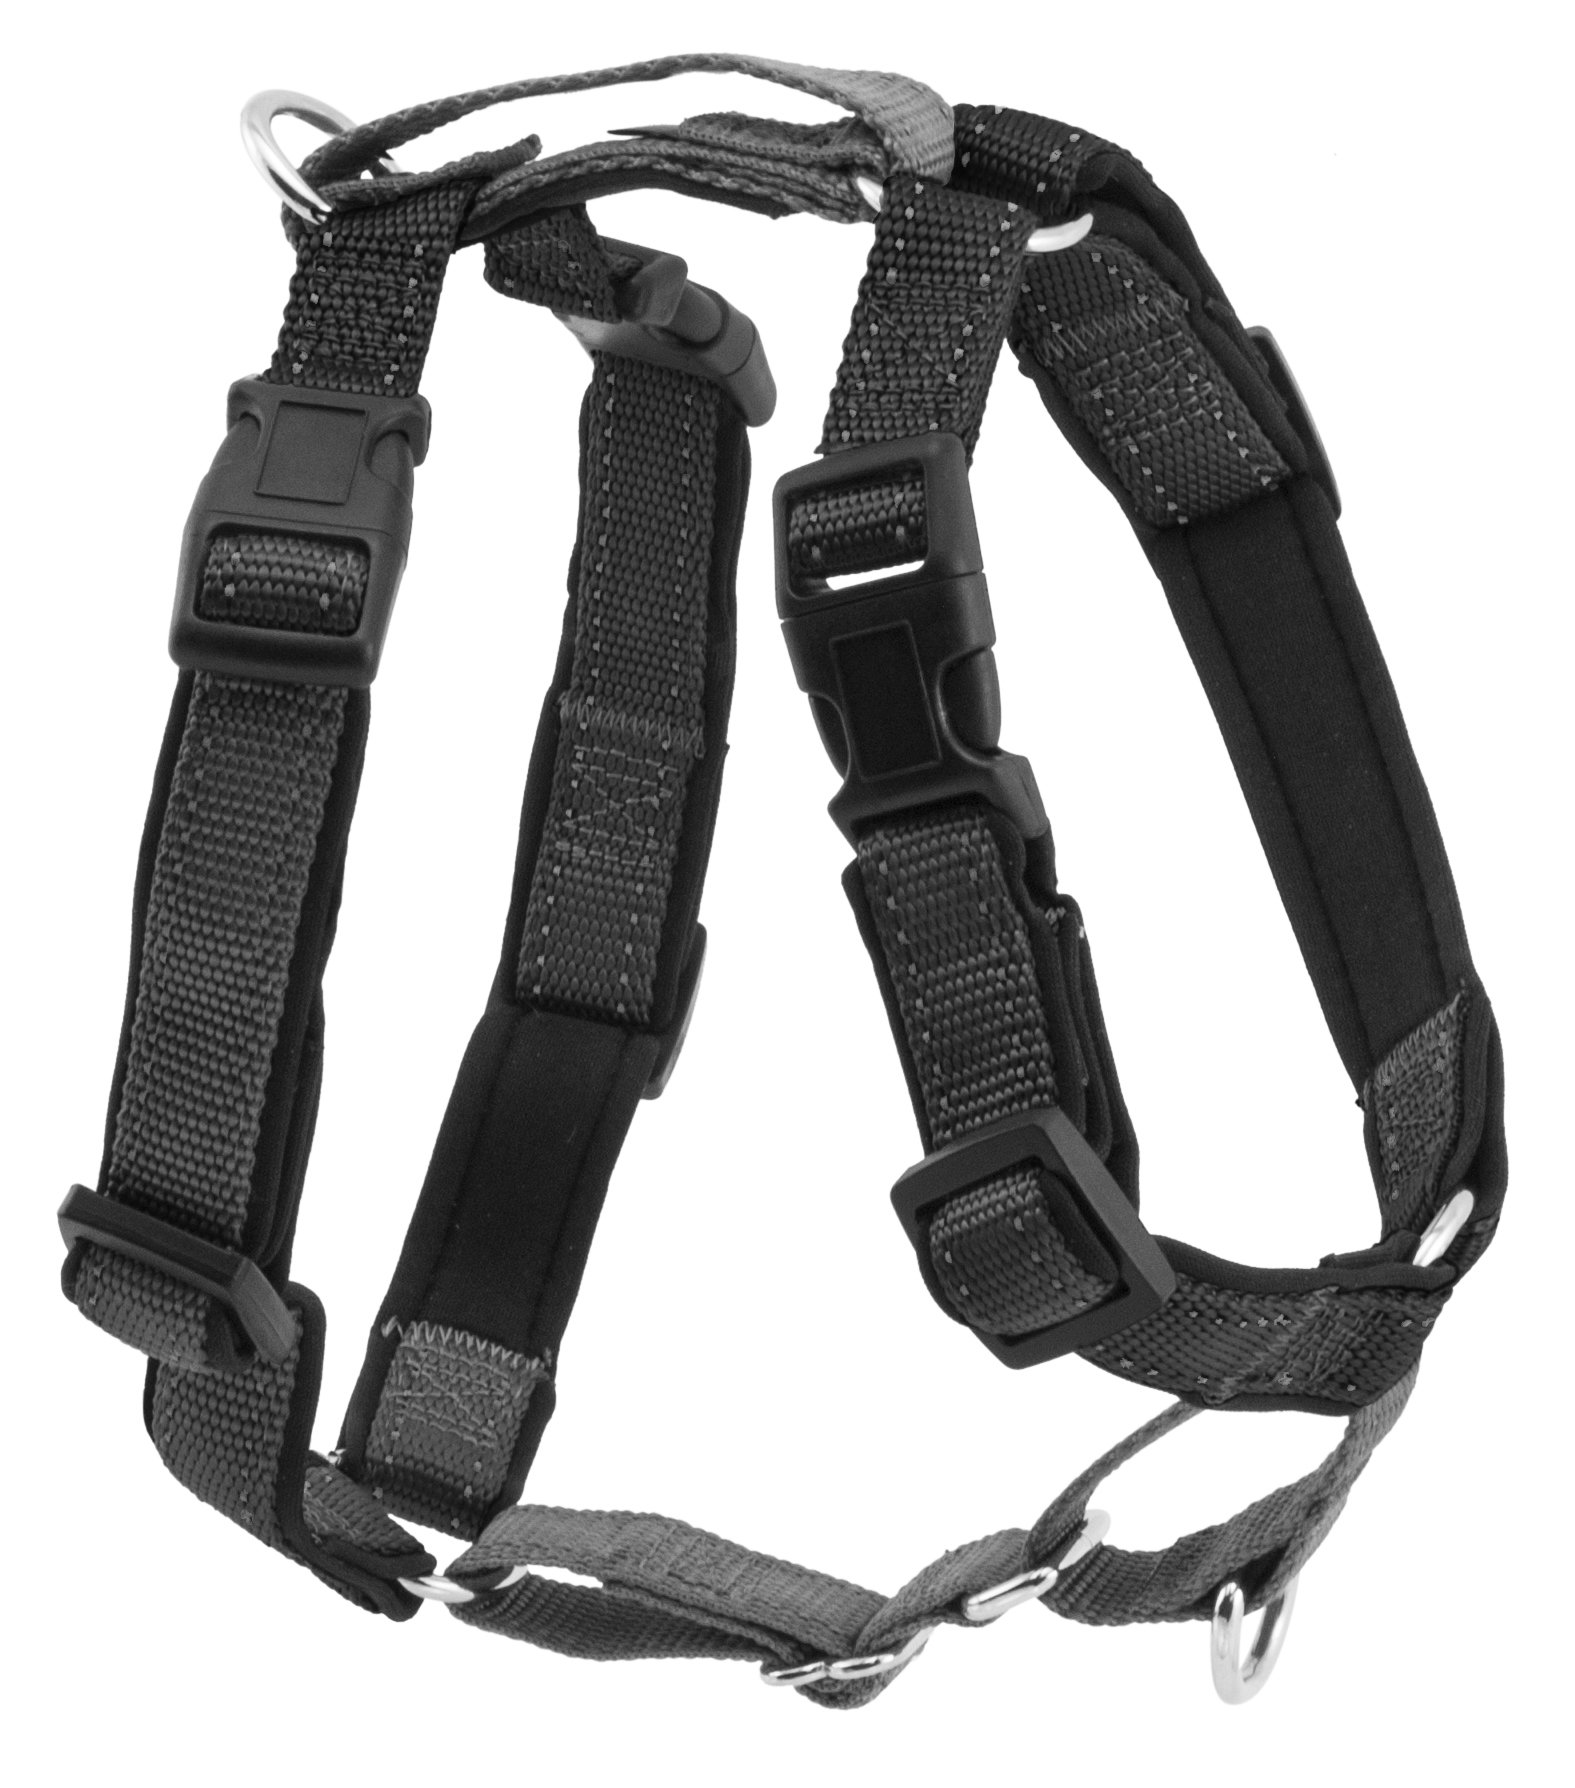 PetSafe 3 in 1 Harness and Car Restraint, Large, Black, No Pull, Adjustable, Training for Small/Medium/Large Dogs by PetSafe